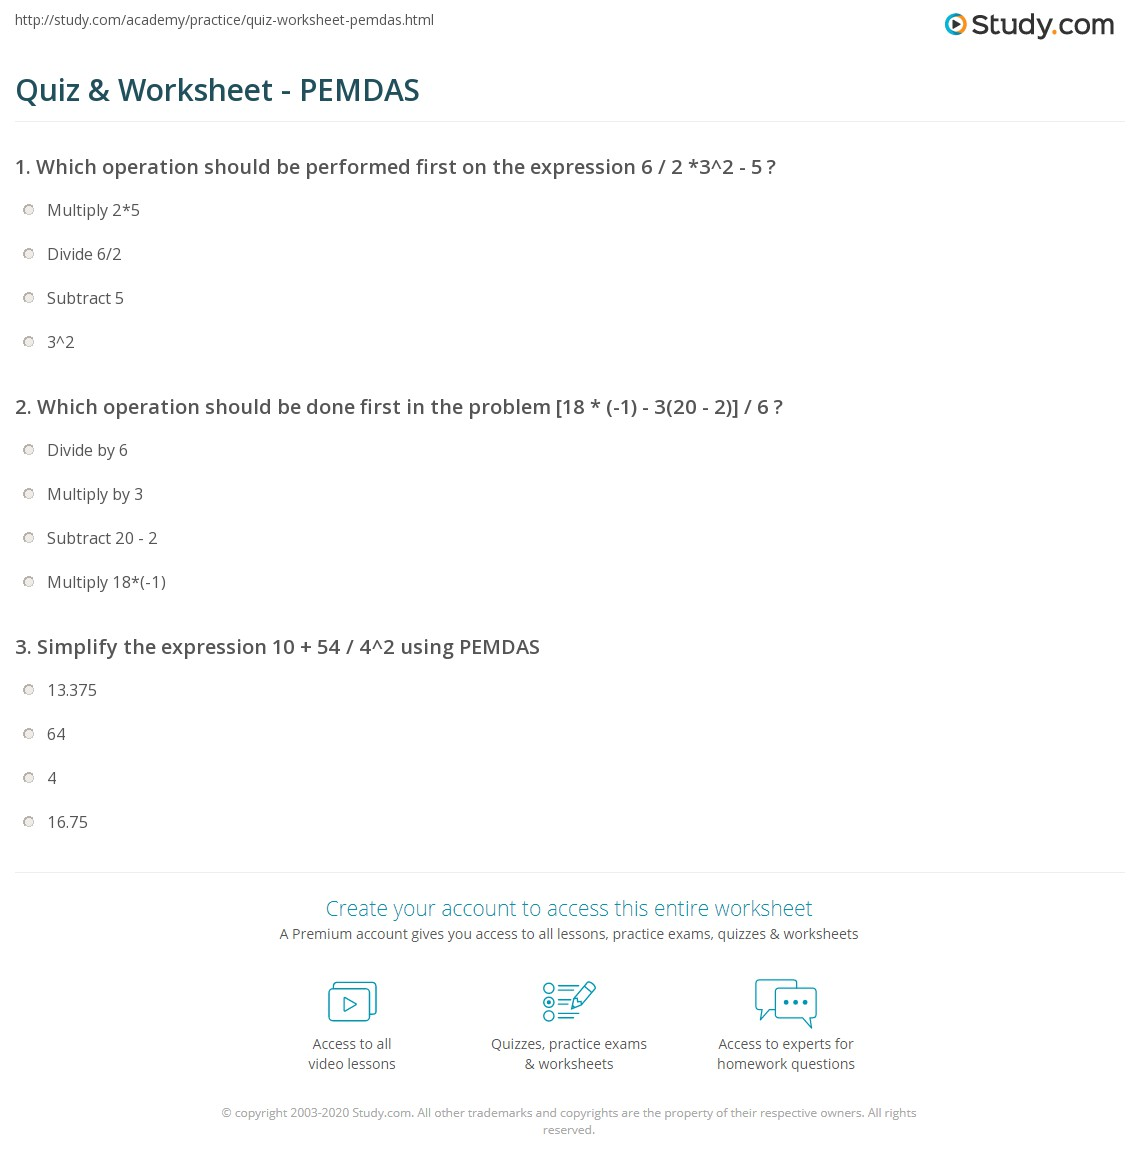 math worksheet : quiz  worksheet  pemdas  study  : Pemdas Math Worksheets